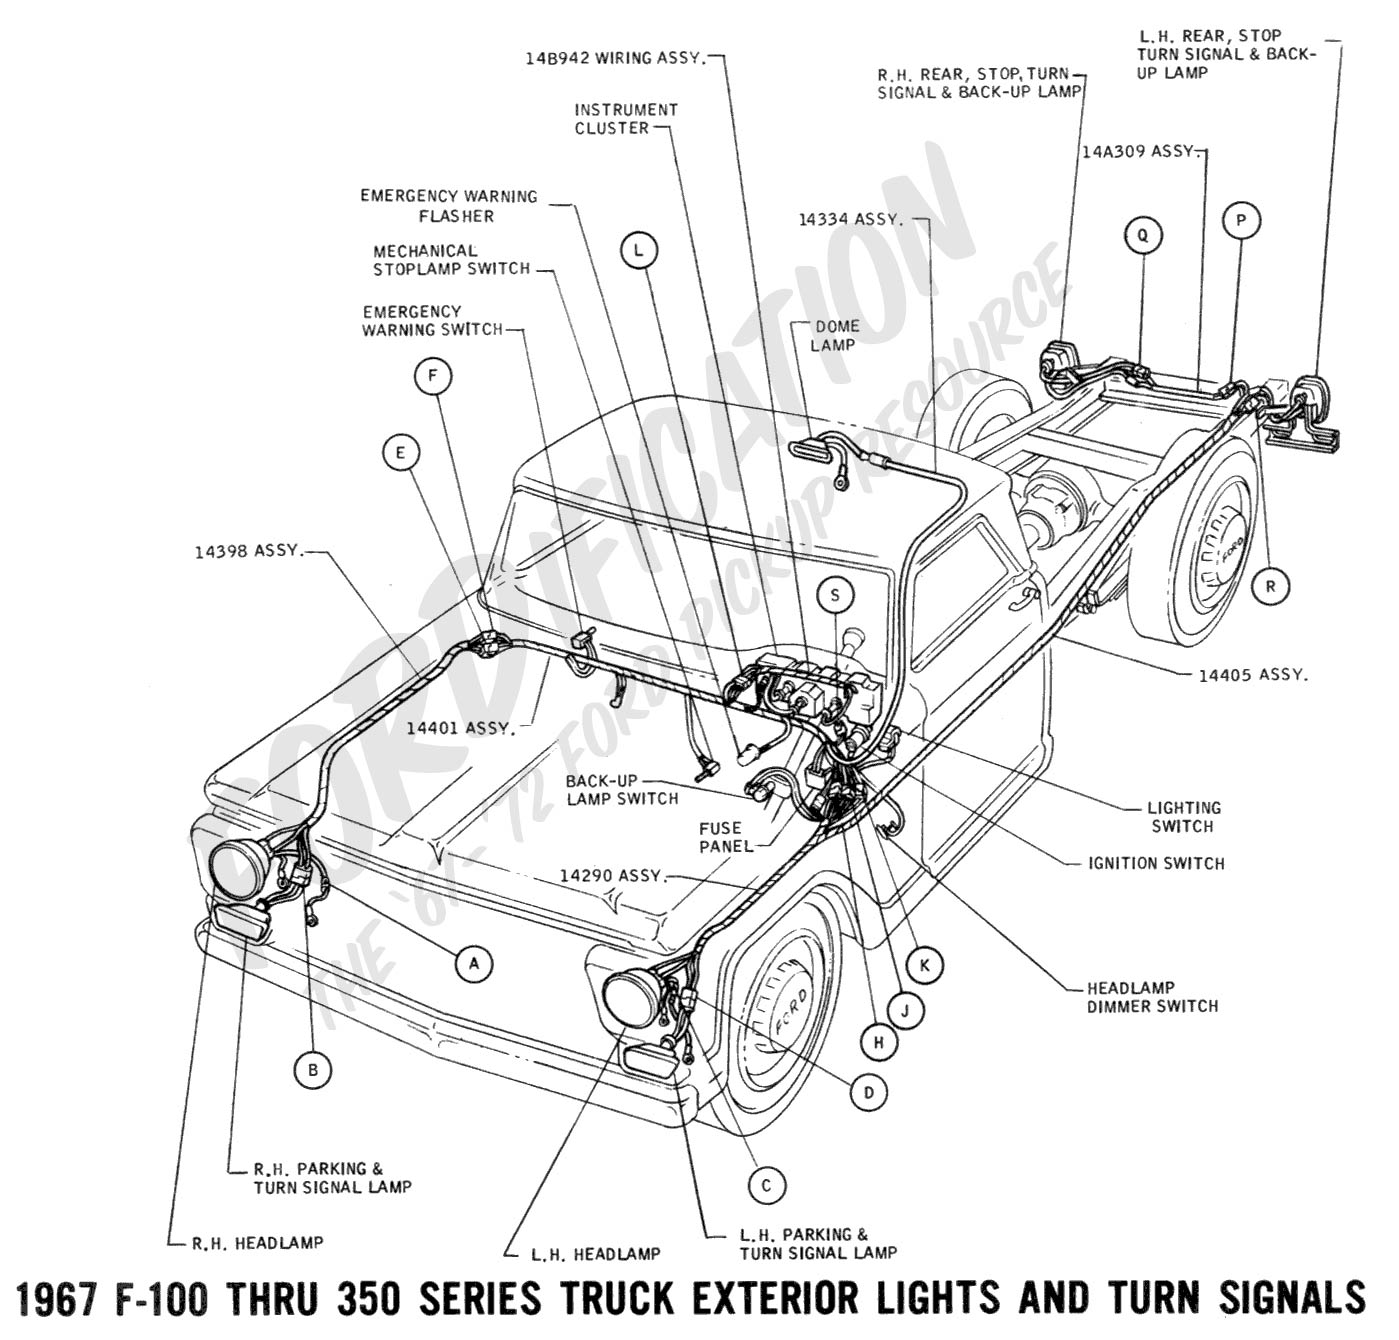 wiring 1967extlights01 ford truck technical drawings and schematics section h wiring 2013 Ford F350 Wiring Diagram at nearapp.co